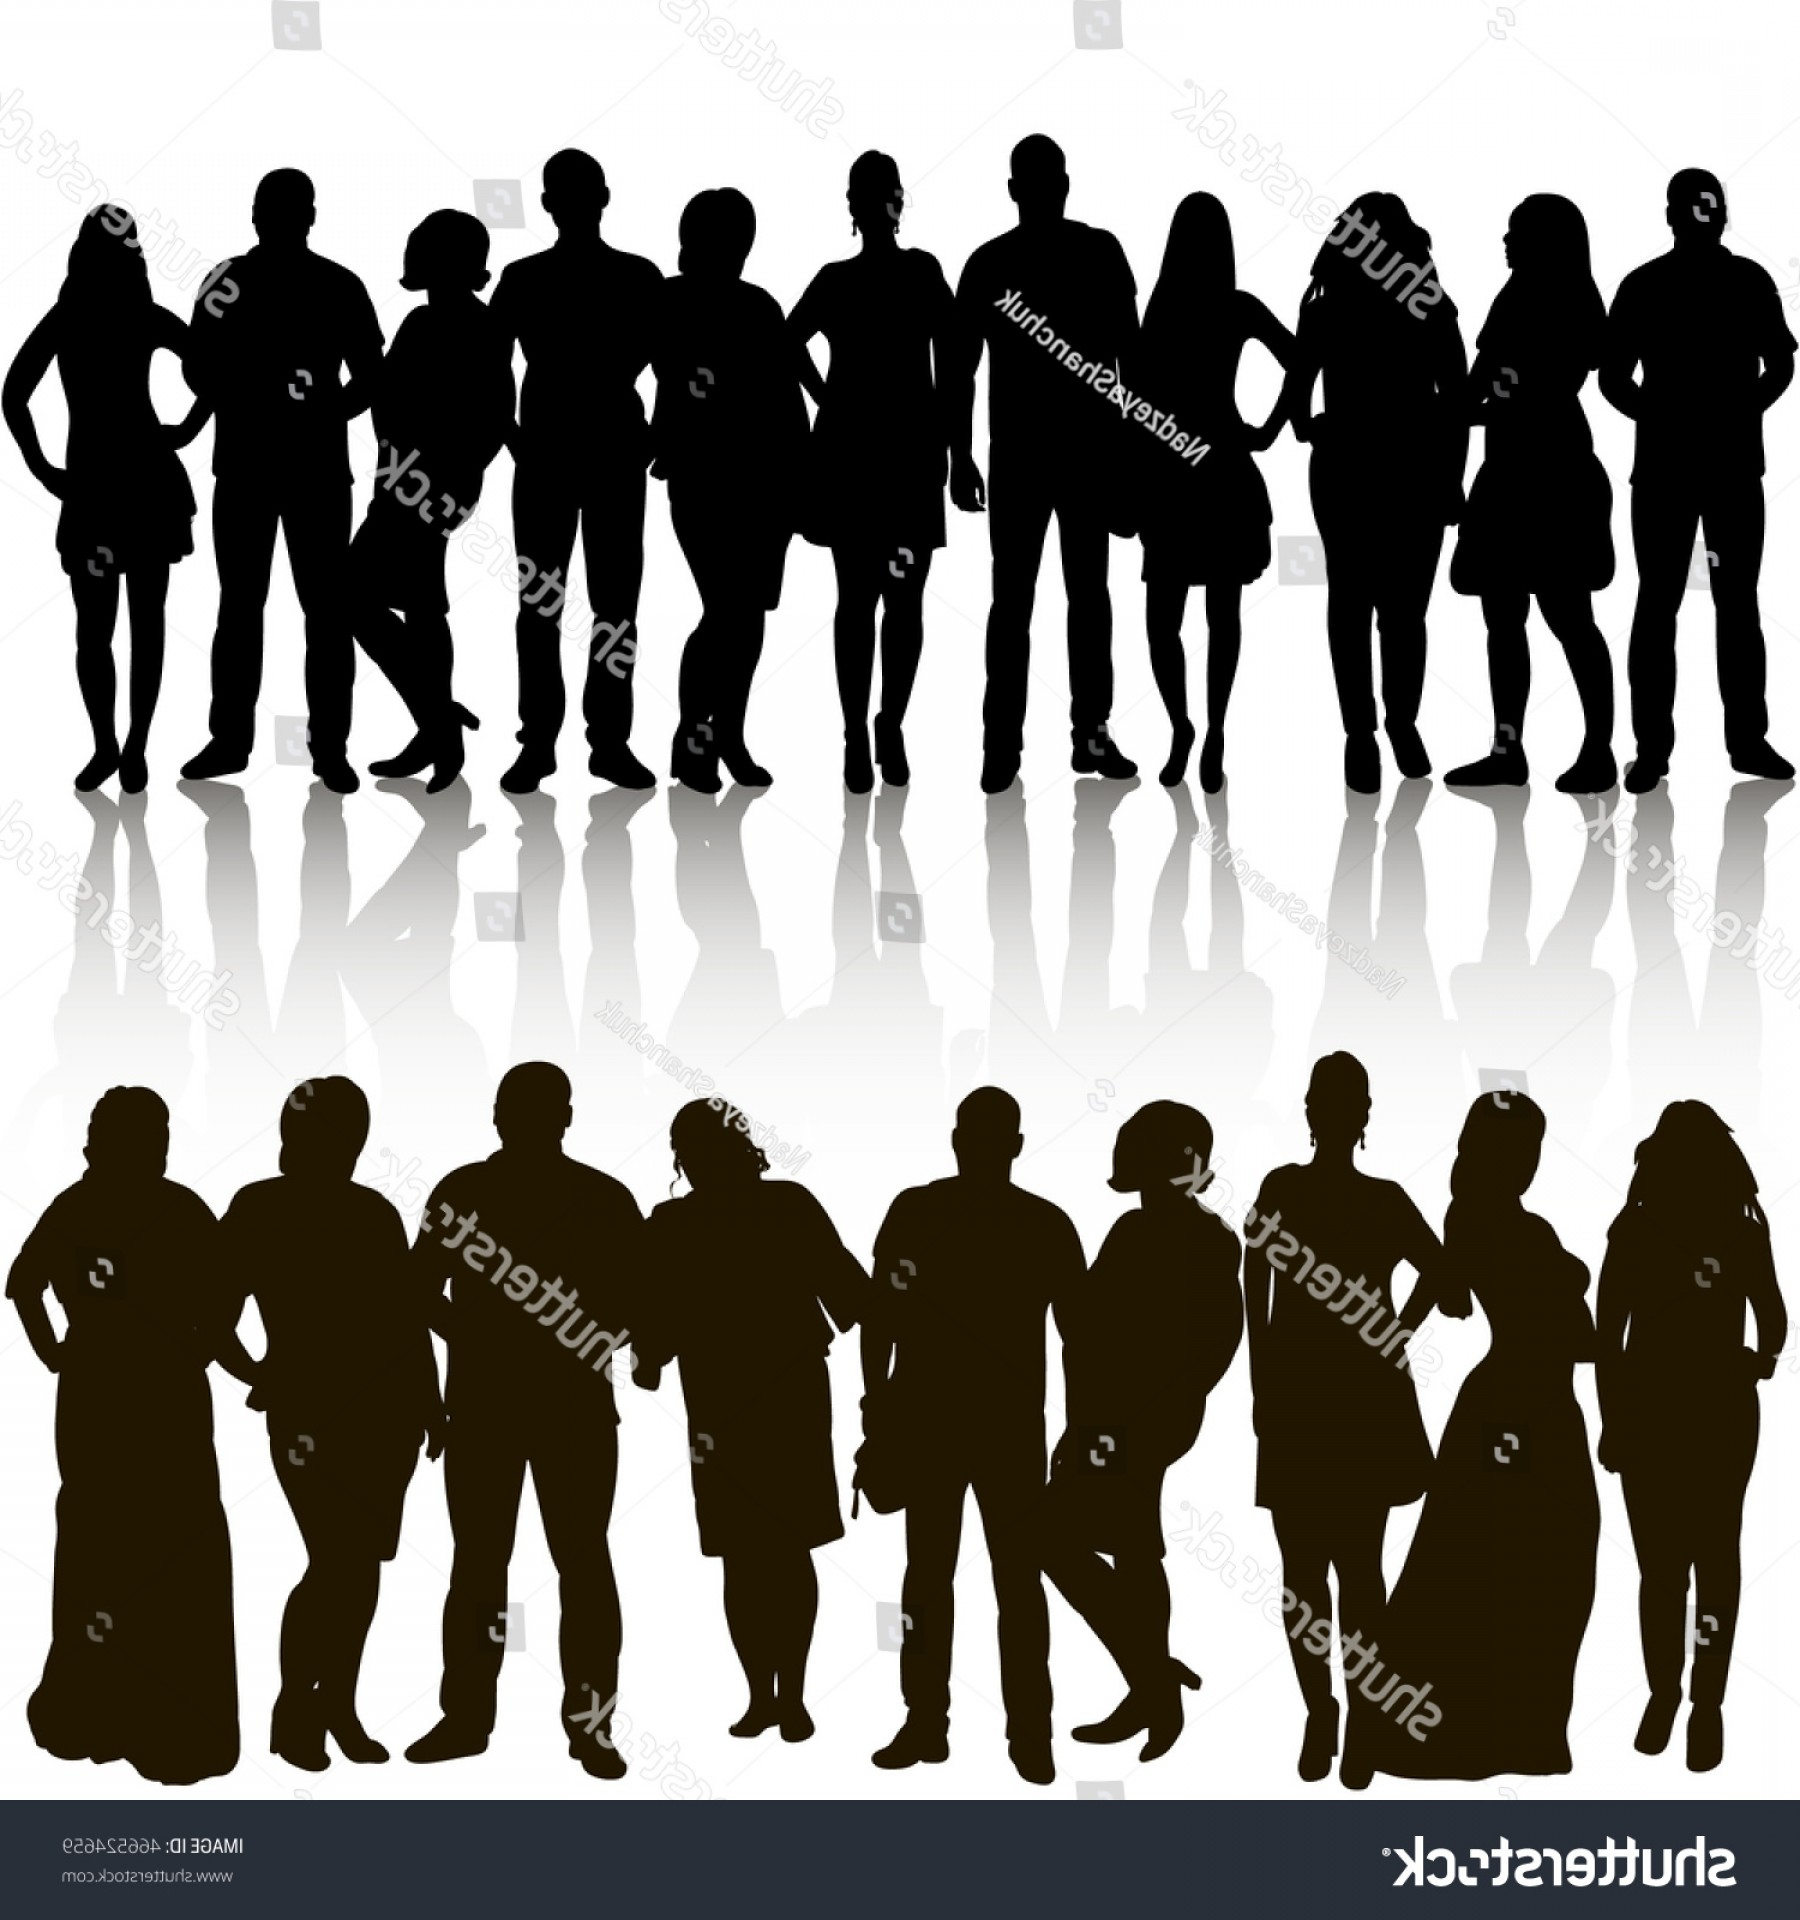 Sillouhette Vector Group: Vector Group People Silhouettes On White